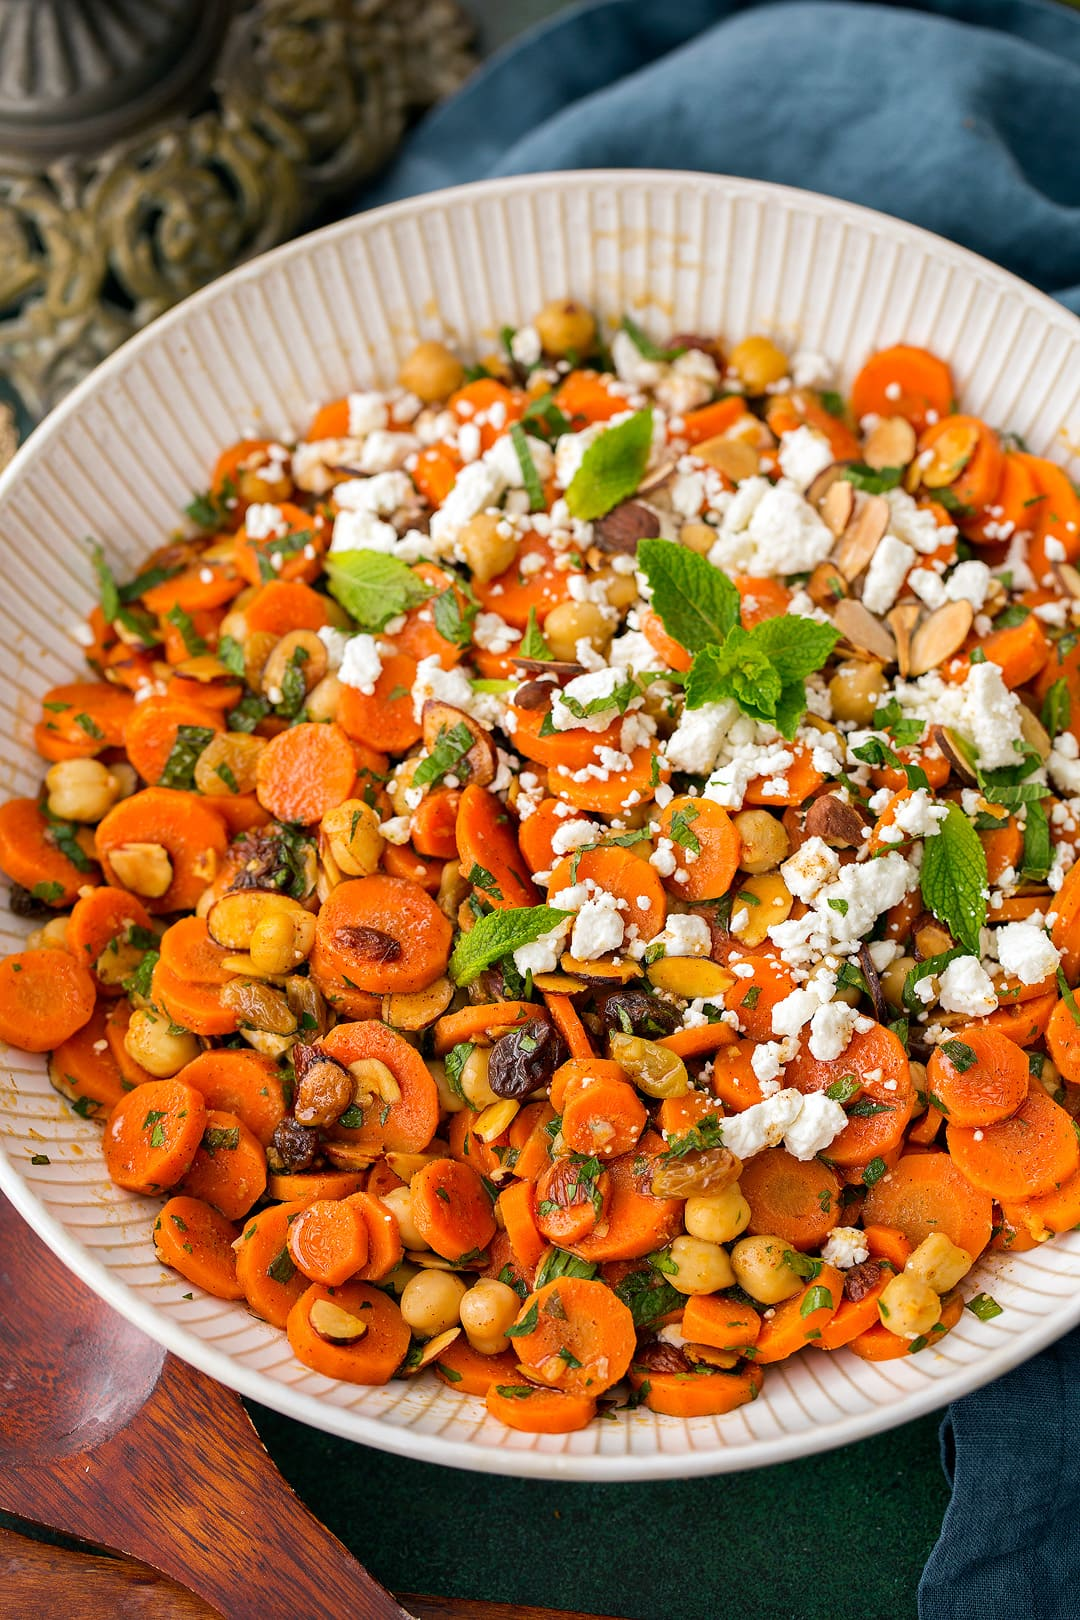 Carrot Salad with chick peas, feta, almonds and raisins. Shown here in a large white shallow bowl.